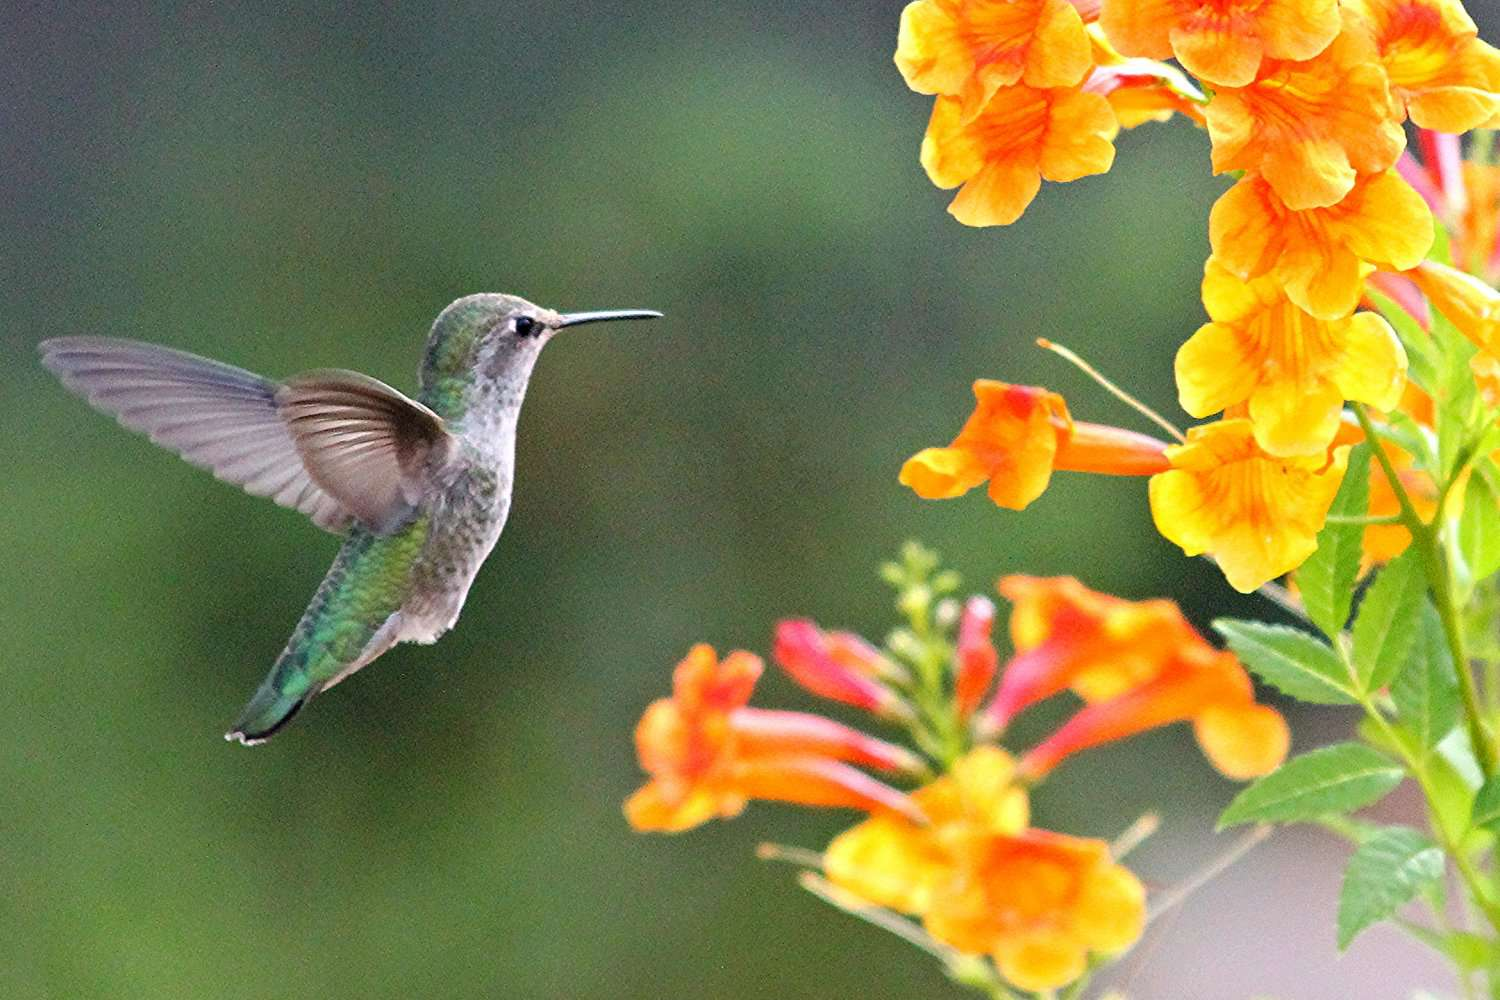 Hummingbird flying up to flowers